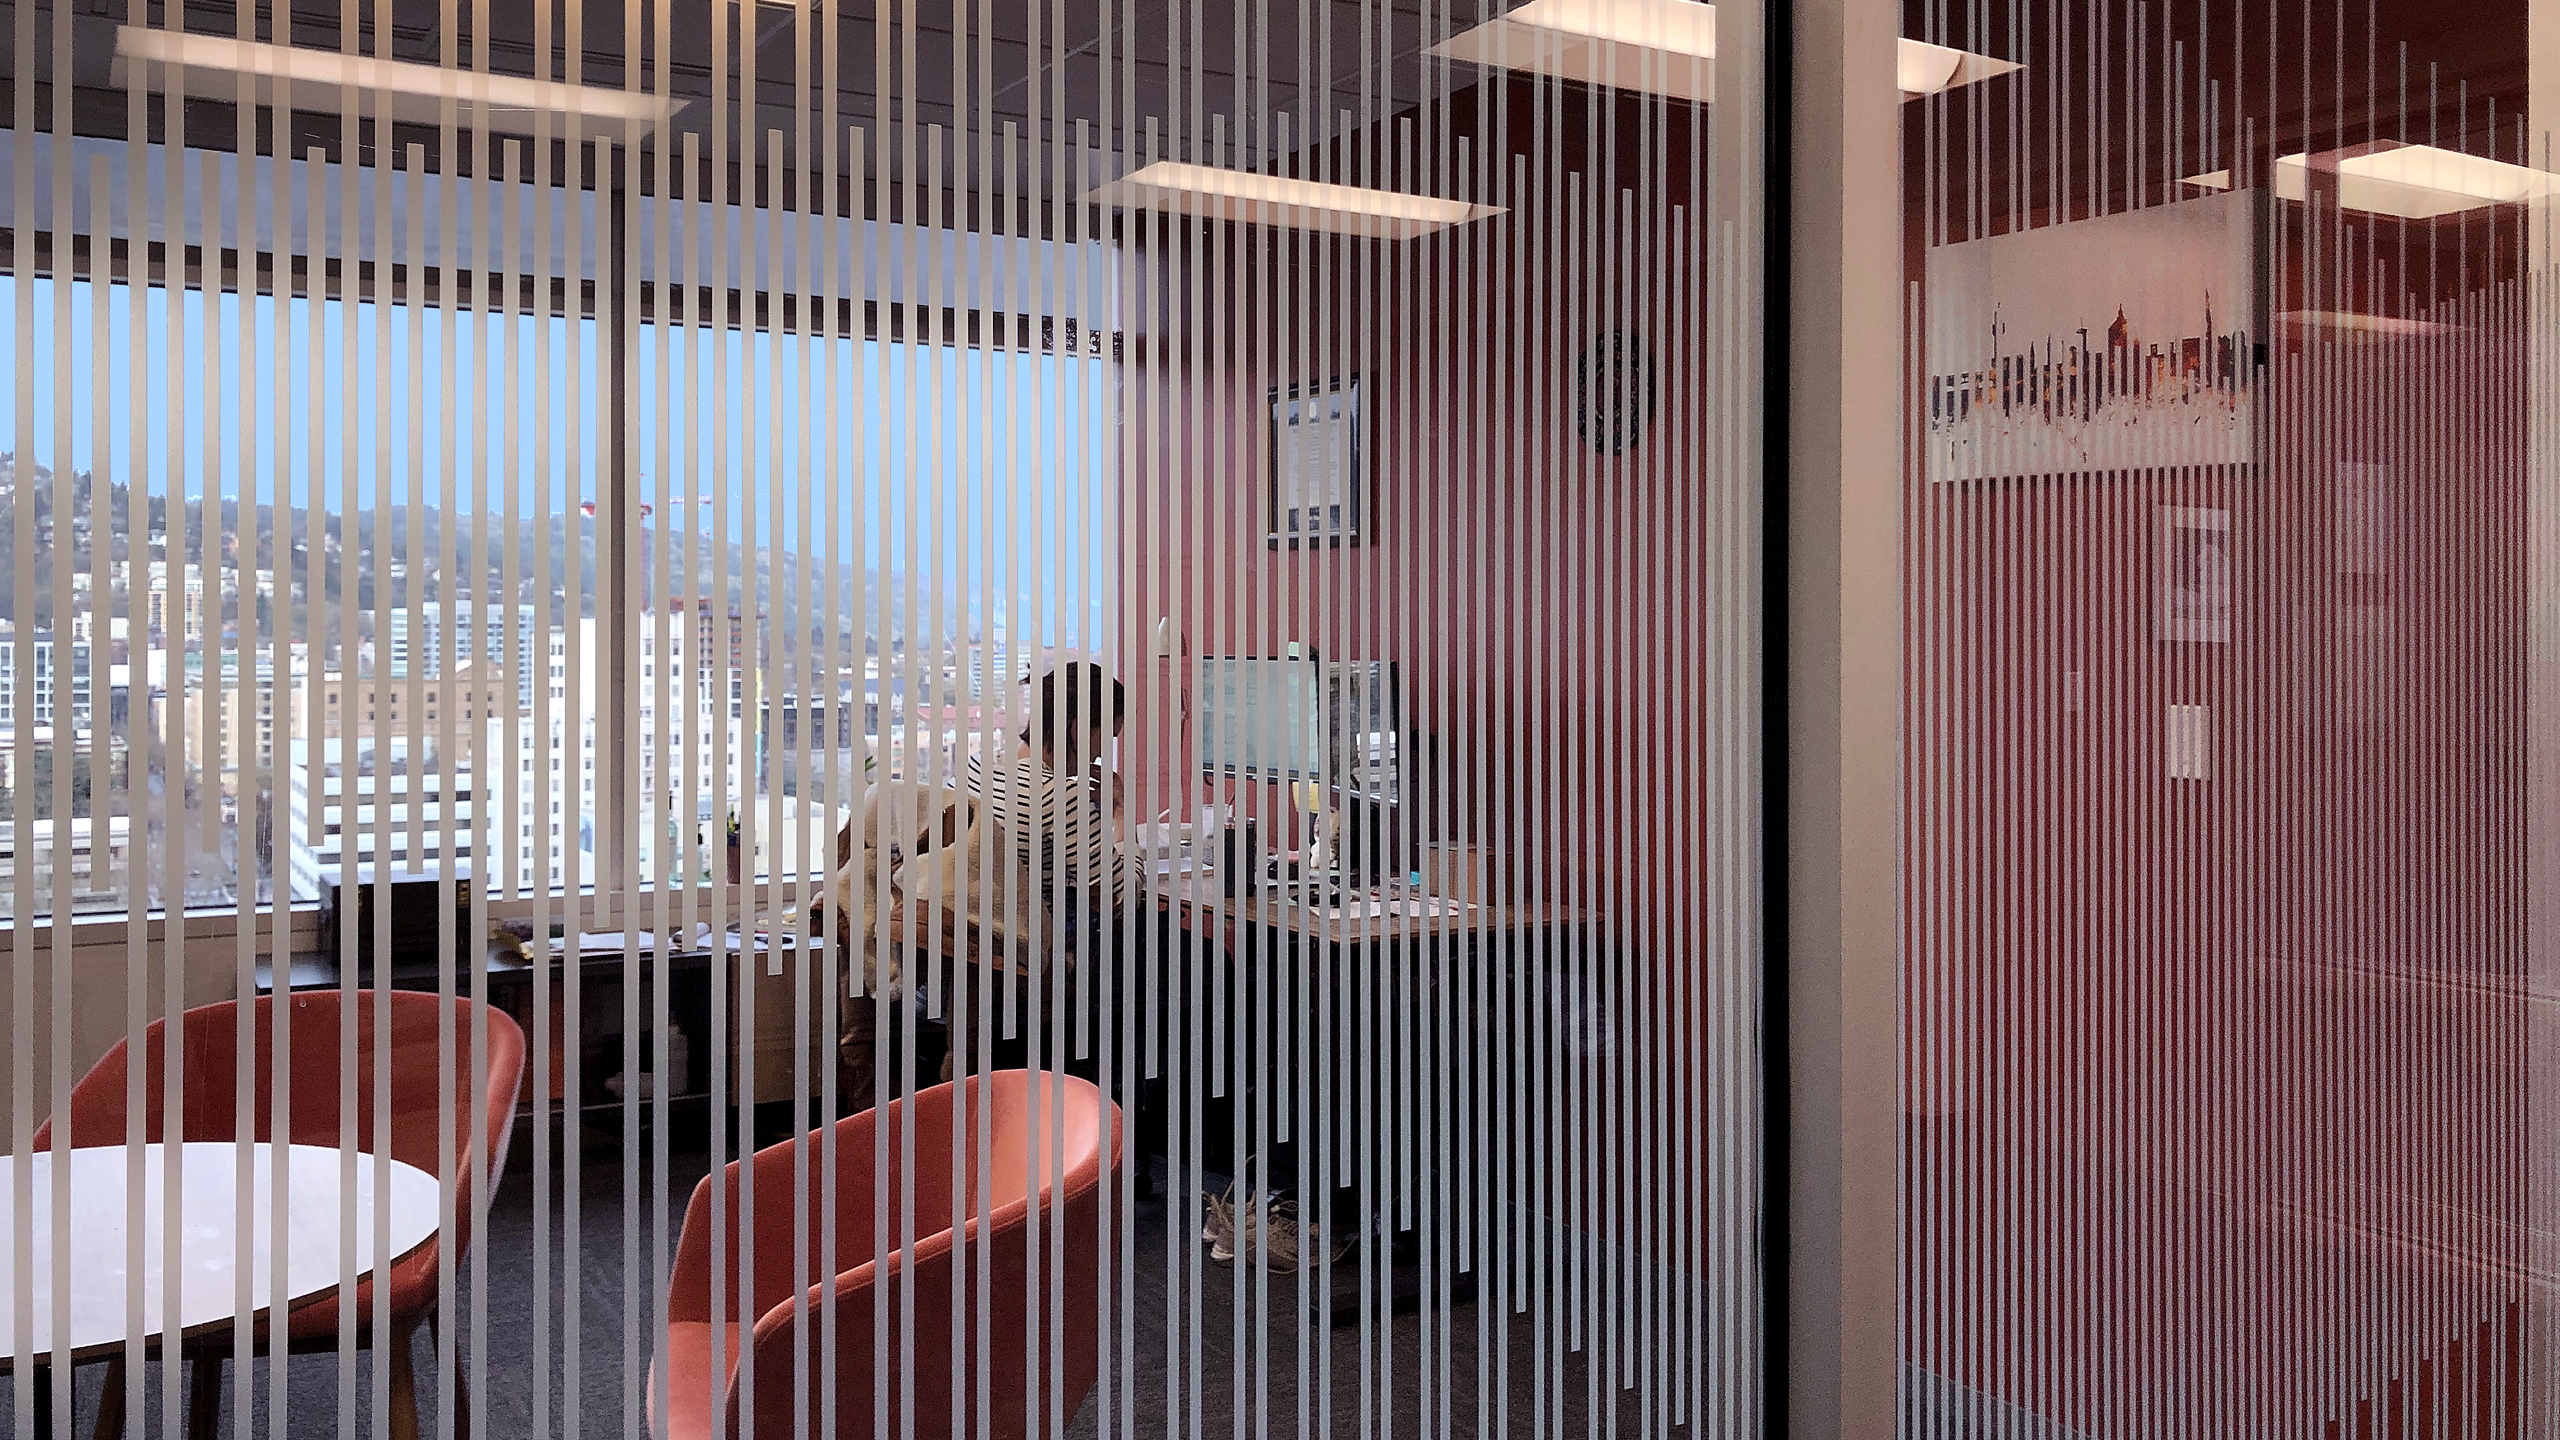 Alterman Law Group Workplace – Craft, Modern Tech and Adaptive Reuse / image 7 / OFFICE 52 Architecture, Alterman Law Group Workplace Design, Portland, Oregon, Photography Isaac Campbell